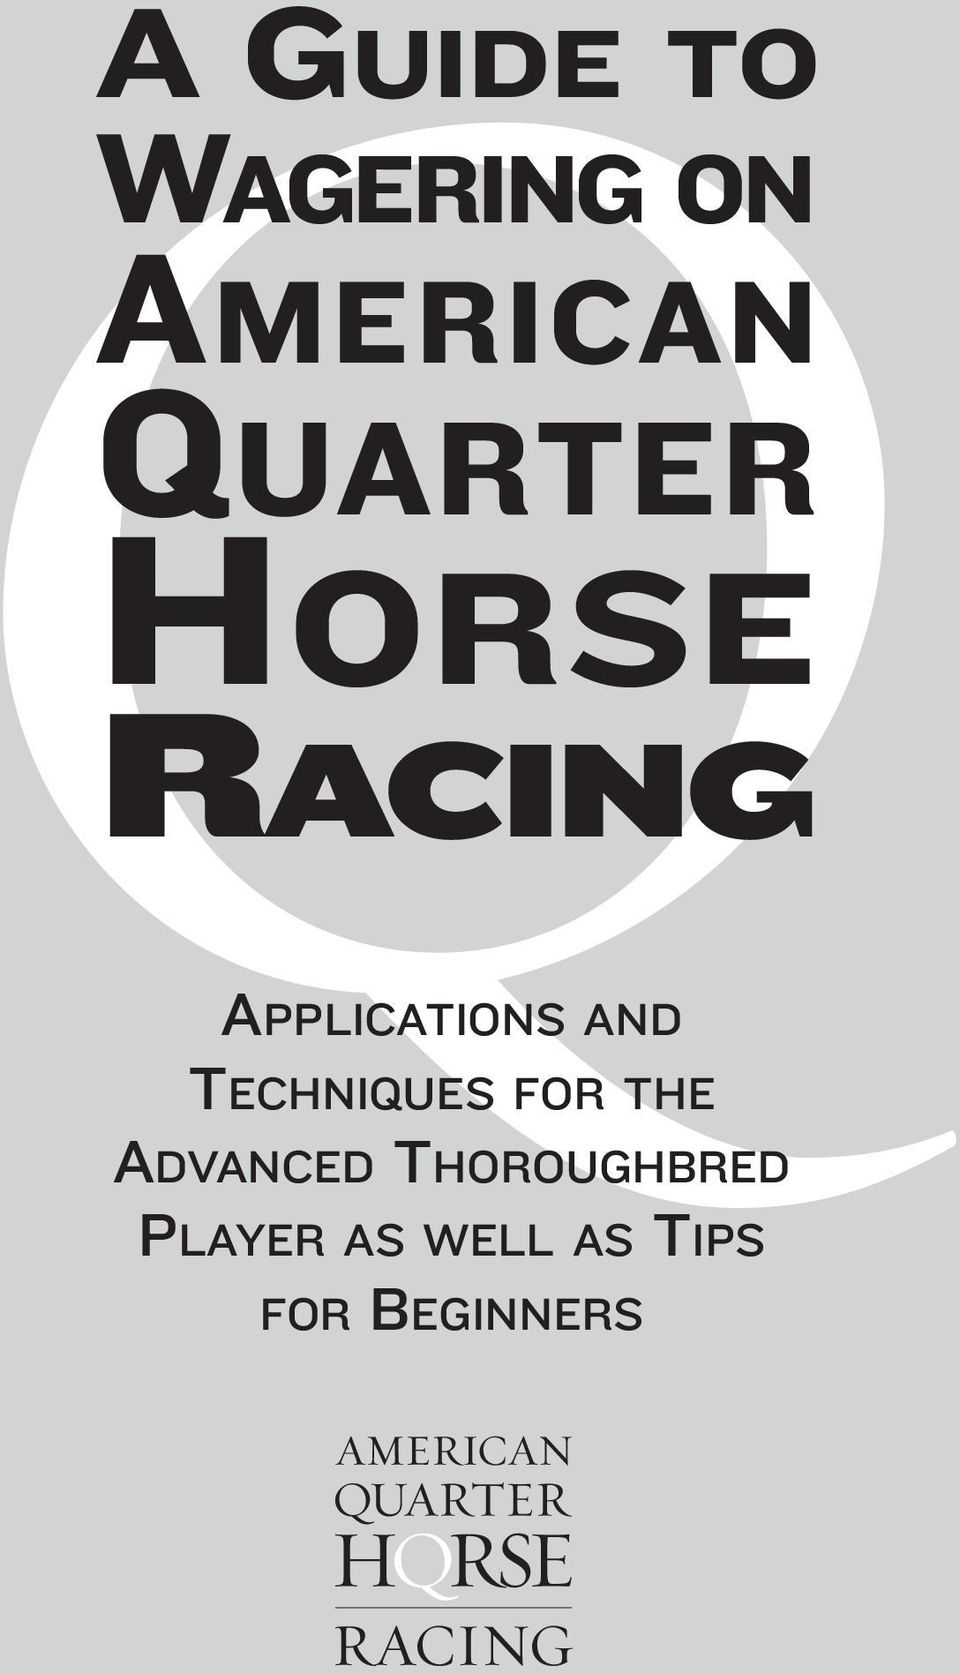 a guide to wagering on american quarter horse racing applications rh docplayer net NYS Racing and Wagering Sport Horse Racing and Wagering Casino